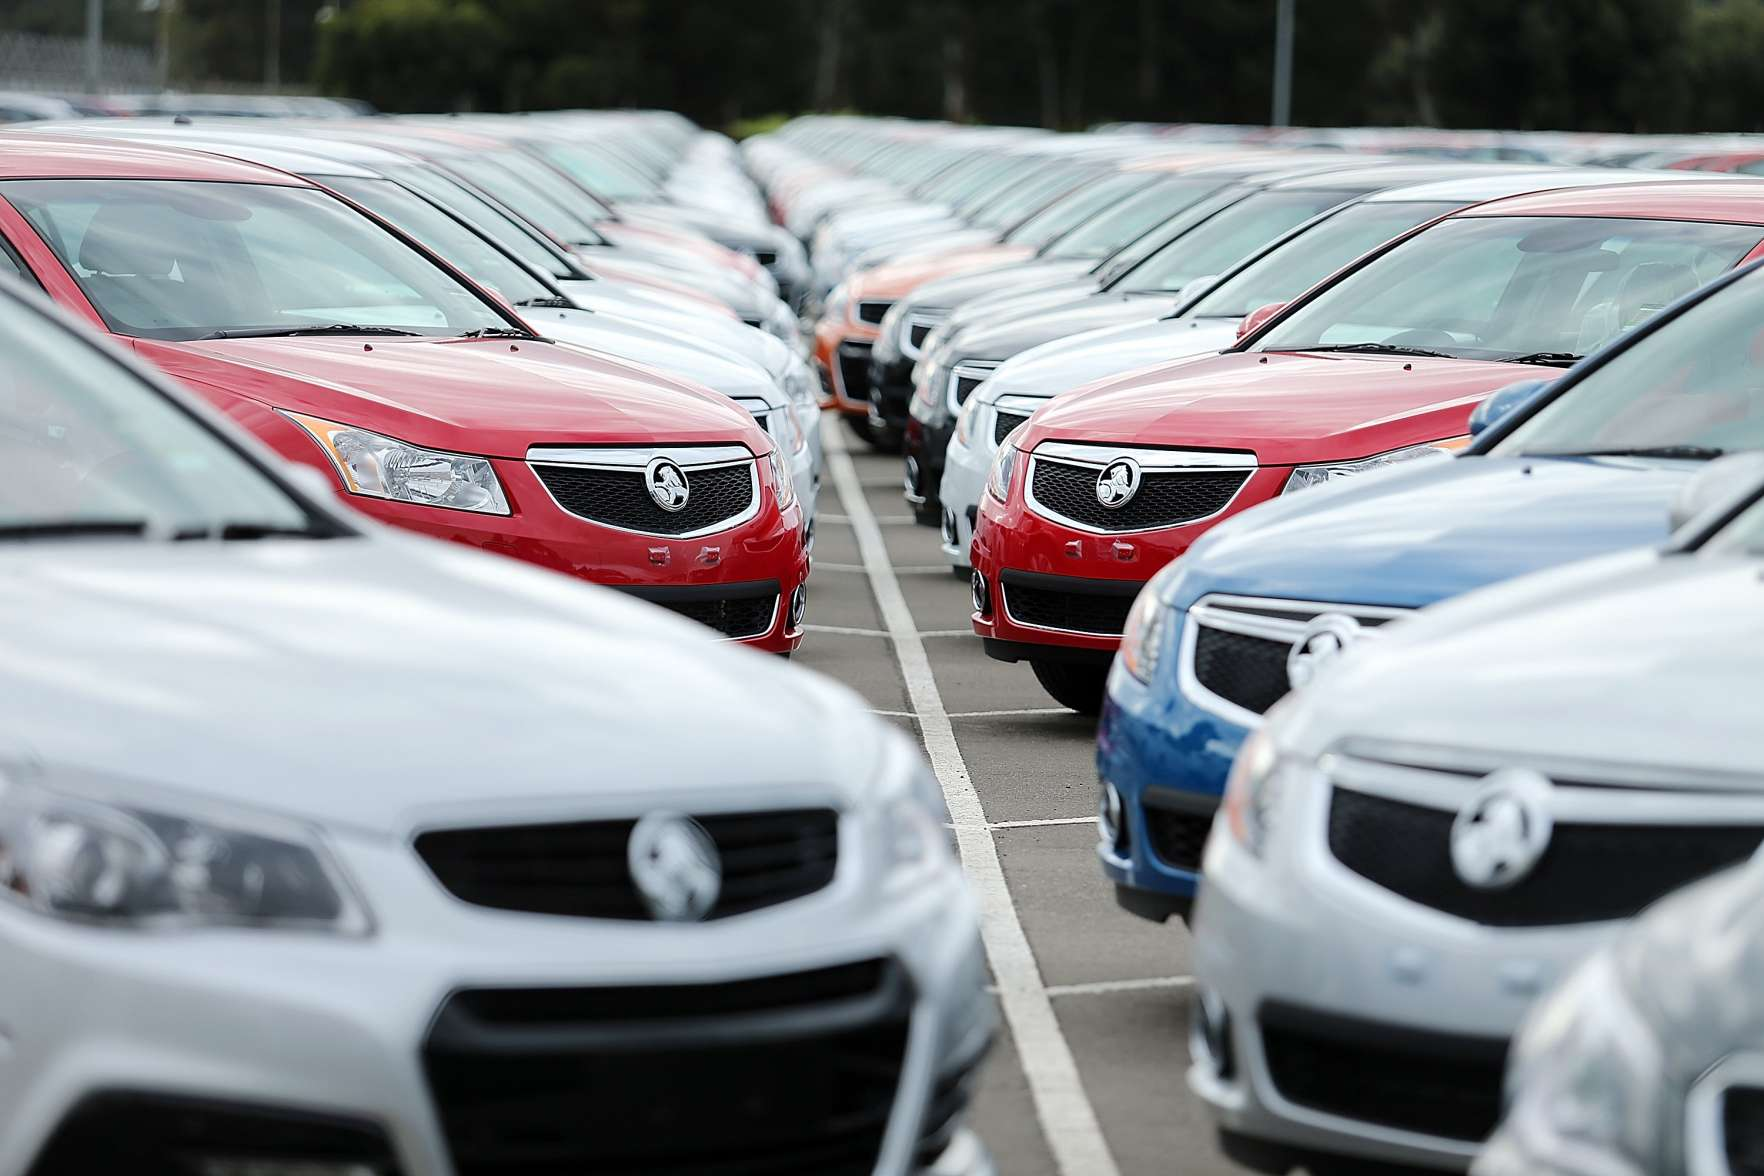 ADELAIDE, AUSTRALIA - JULY 30:  New cars are parked on the lot at the Holden manufacturing plant at Elizabeth on July 30, 2013 in Adelaide, Australia. Holden, a subsidiary of American car giant General Motors recently reduced its staff in Adelaide by 400, in an effort to reduce operating costs. Holden and other local car manufacturers have received years of both federal and state government grants, and PM Kevin Rudd recently said he was  ...determined to see this industry survive into the future.   (Photo by Morne de Klerk/Getty Images)